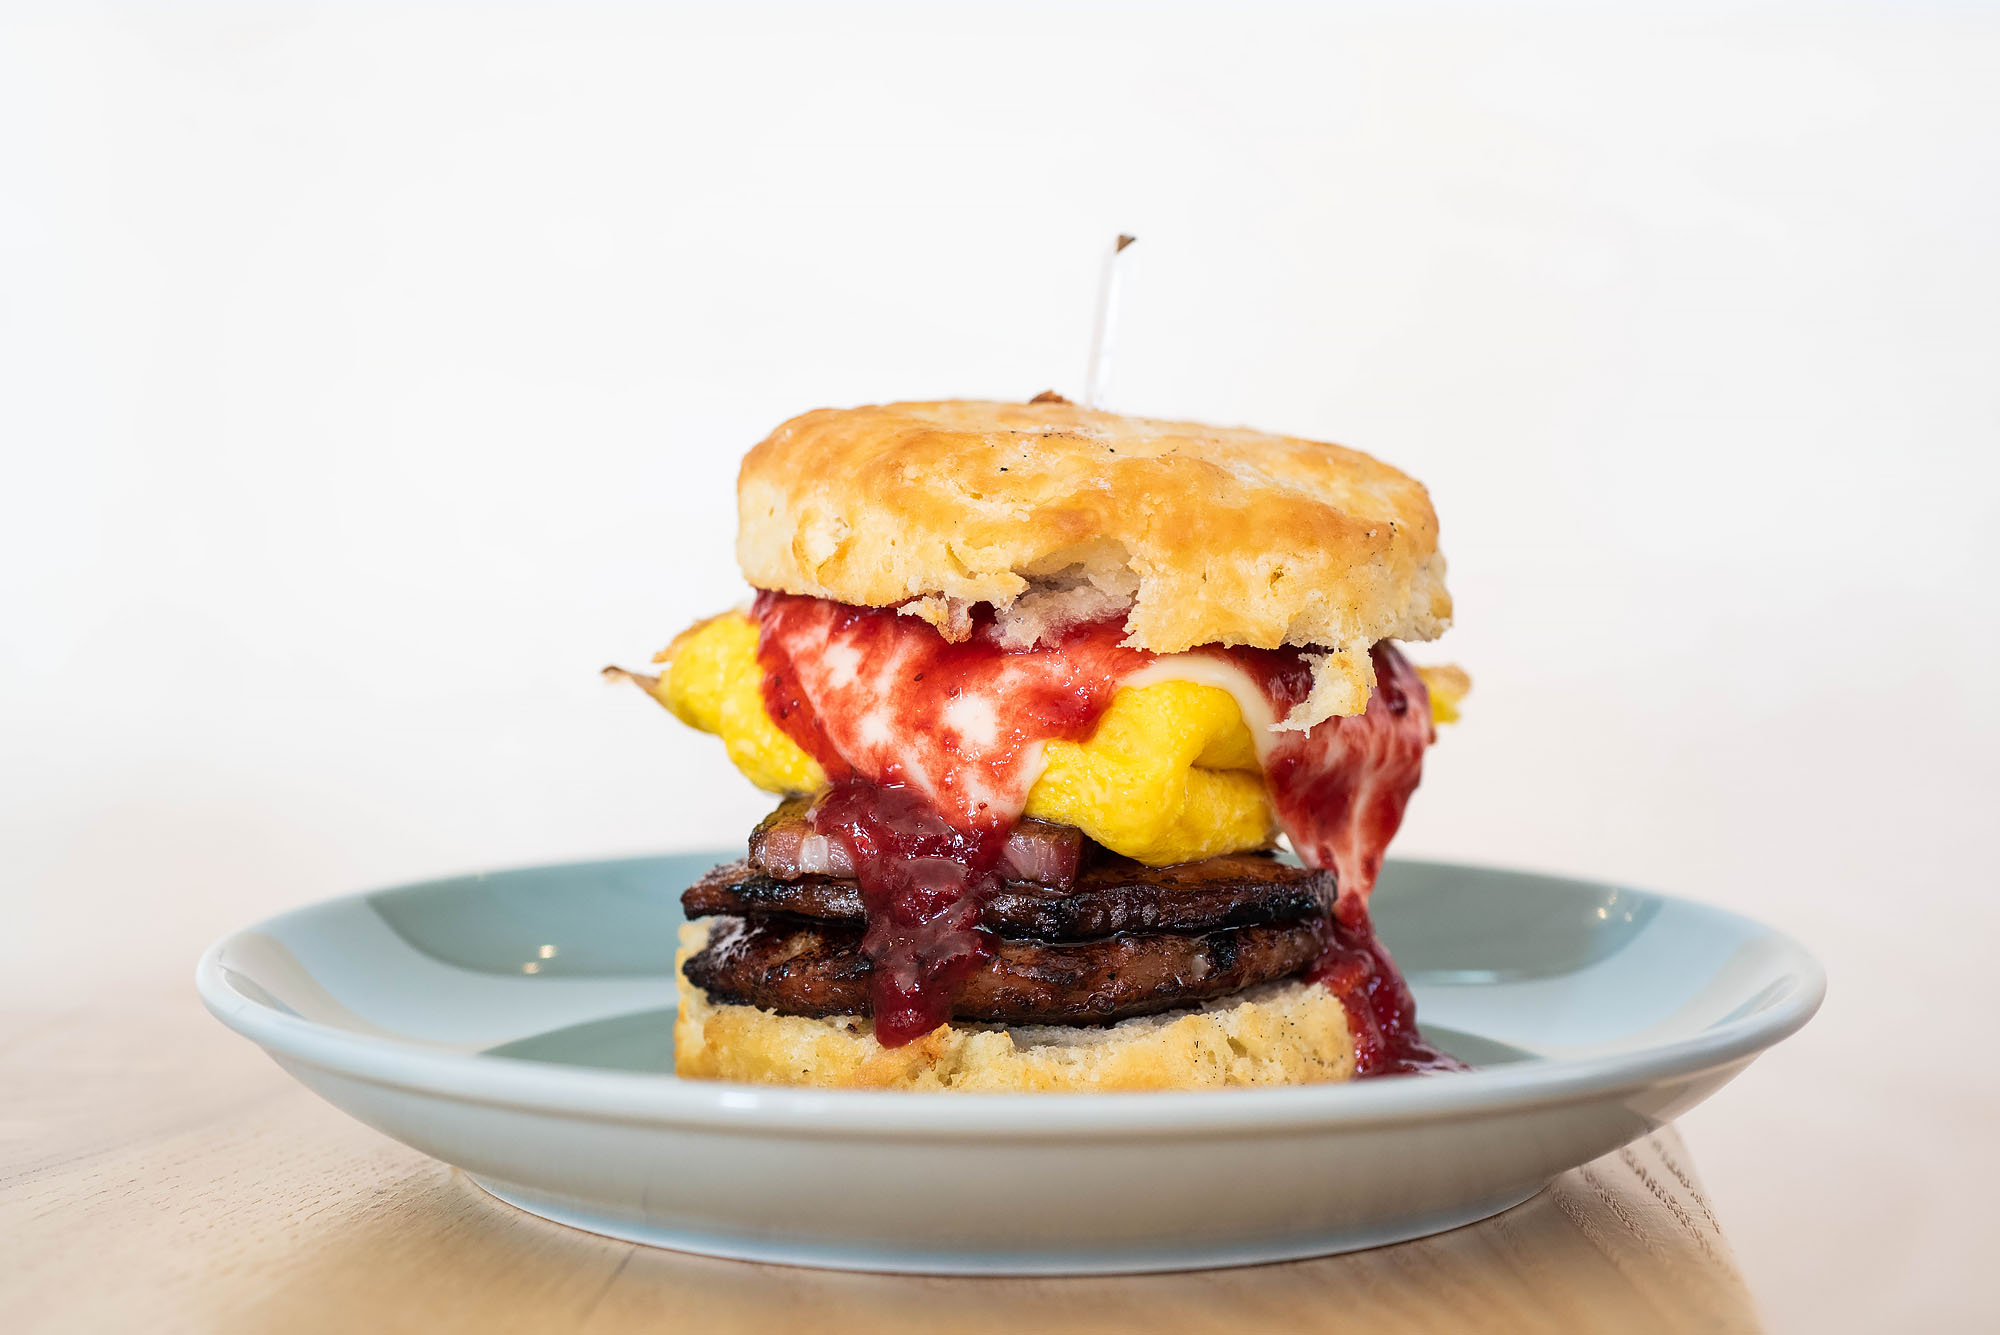 A breakfast sandwich on a biscuit at All Day Baby